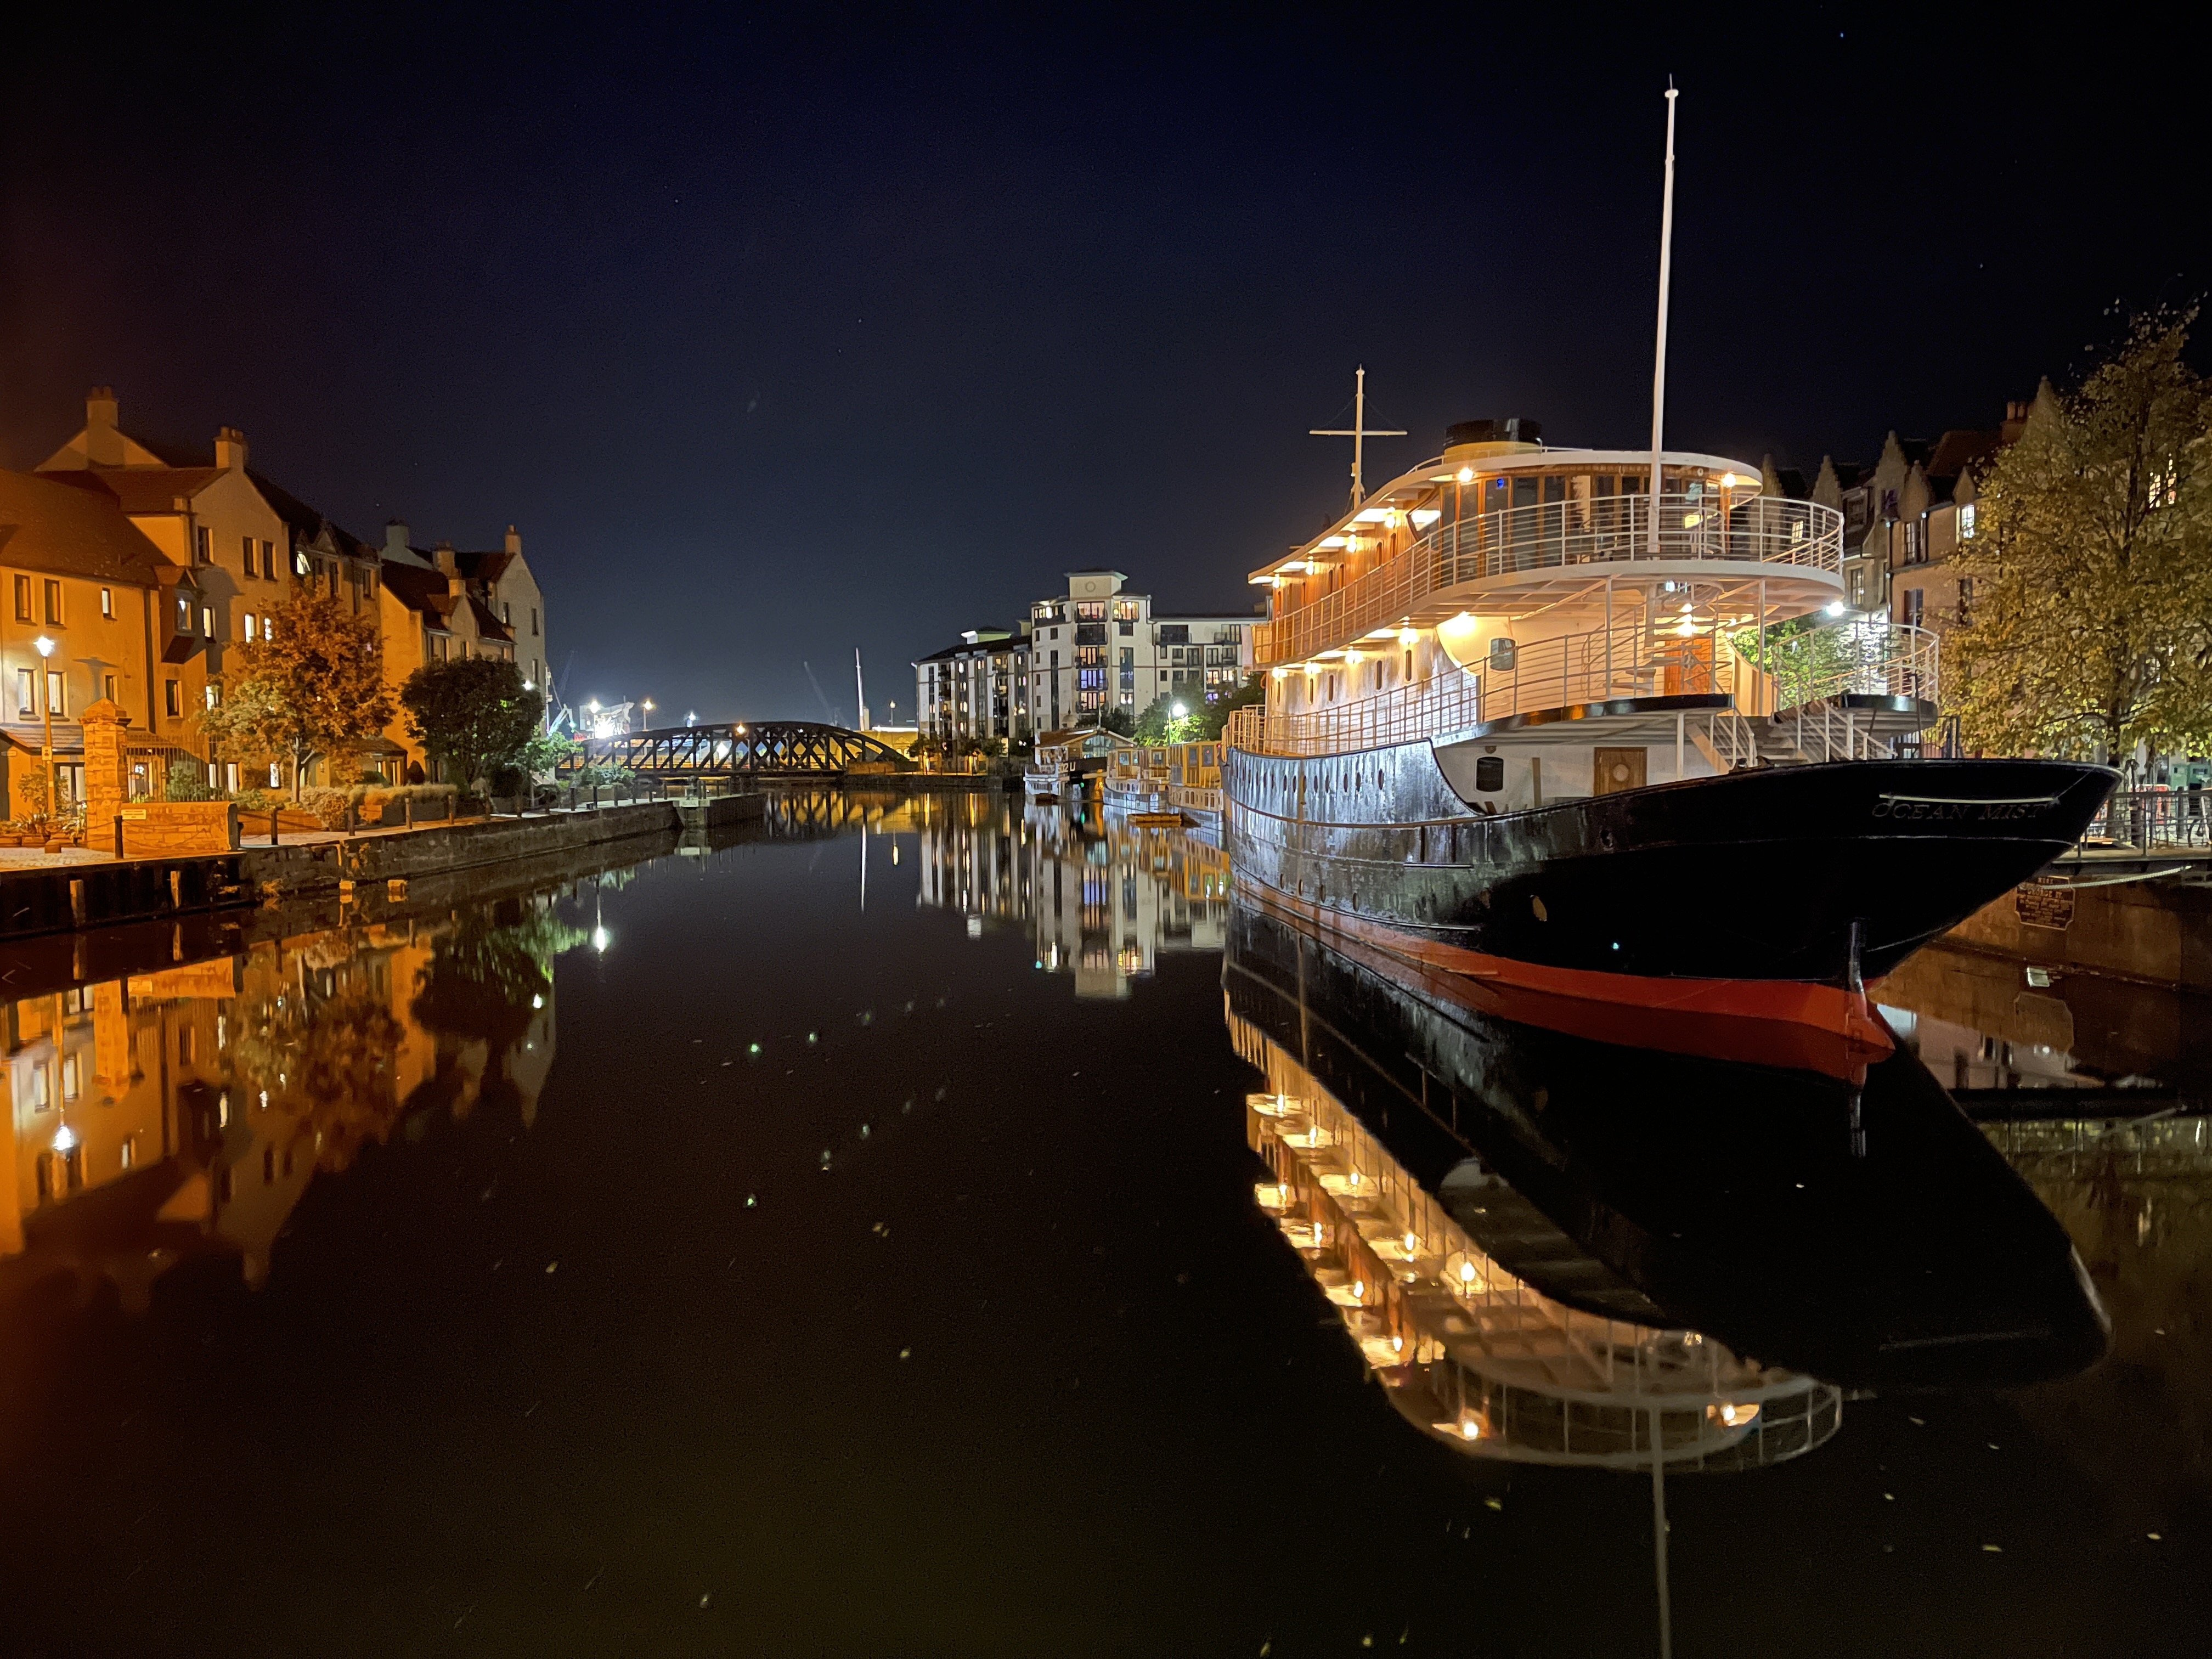 boat-normal-night-mode-iphone-12-pro-max